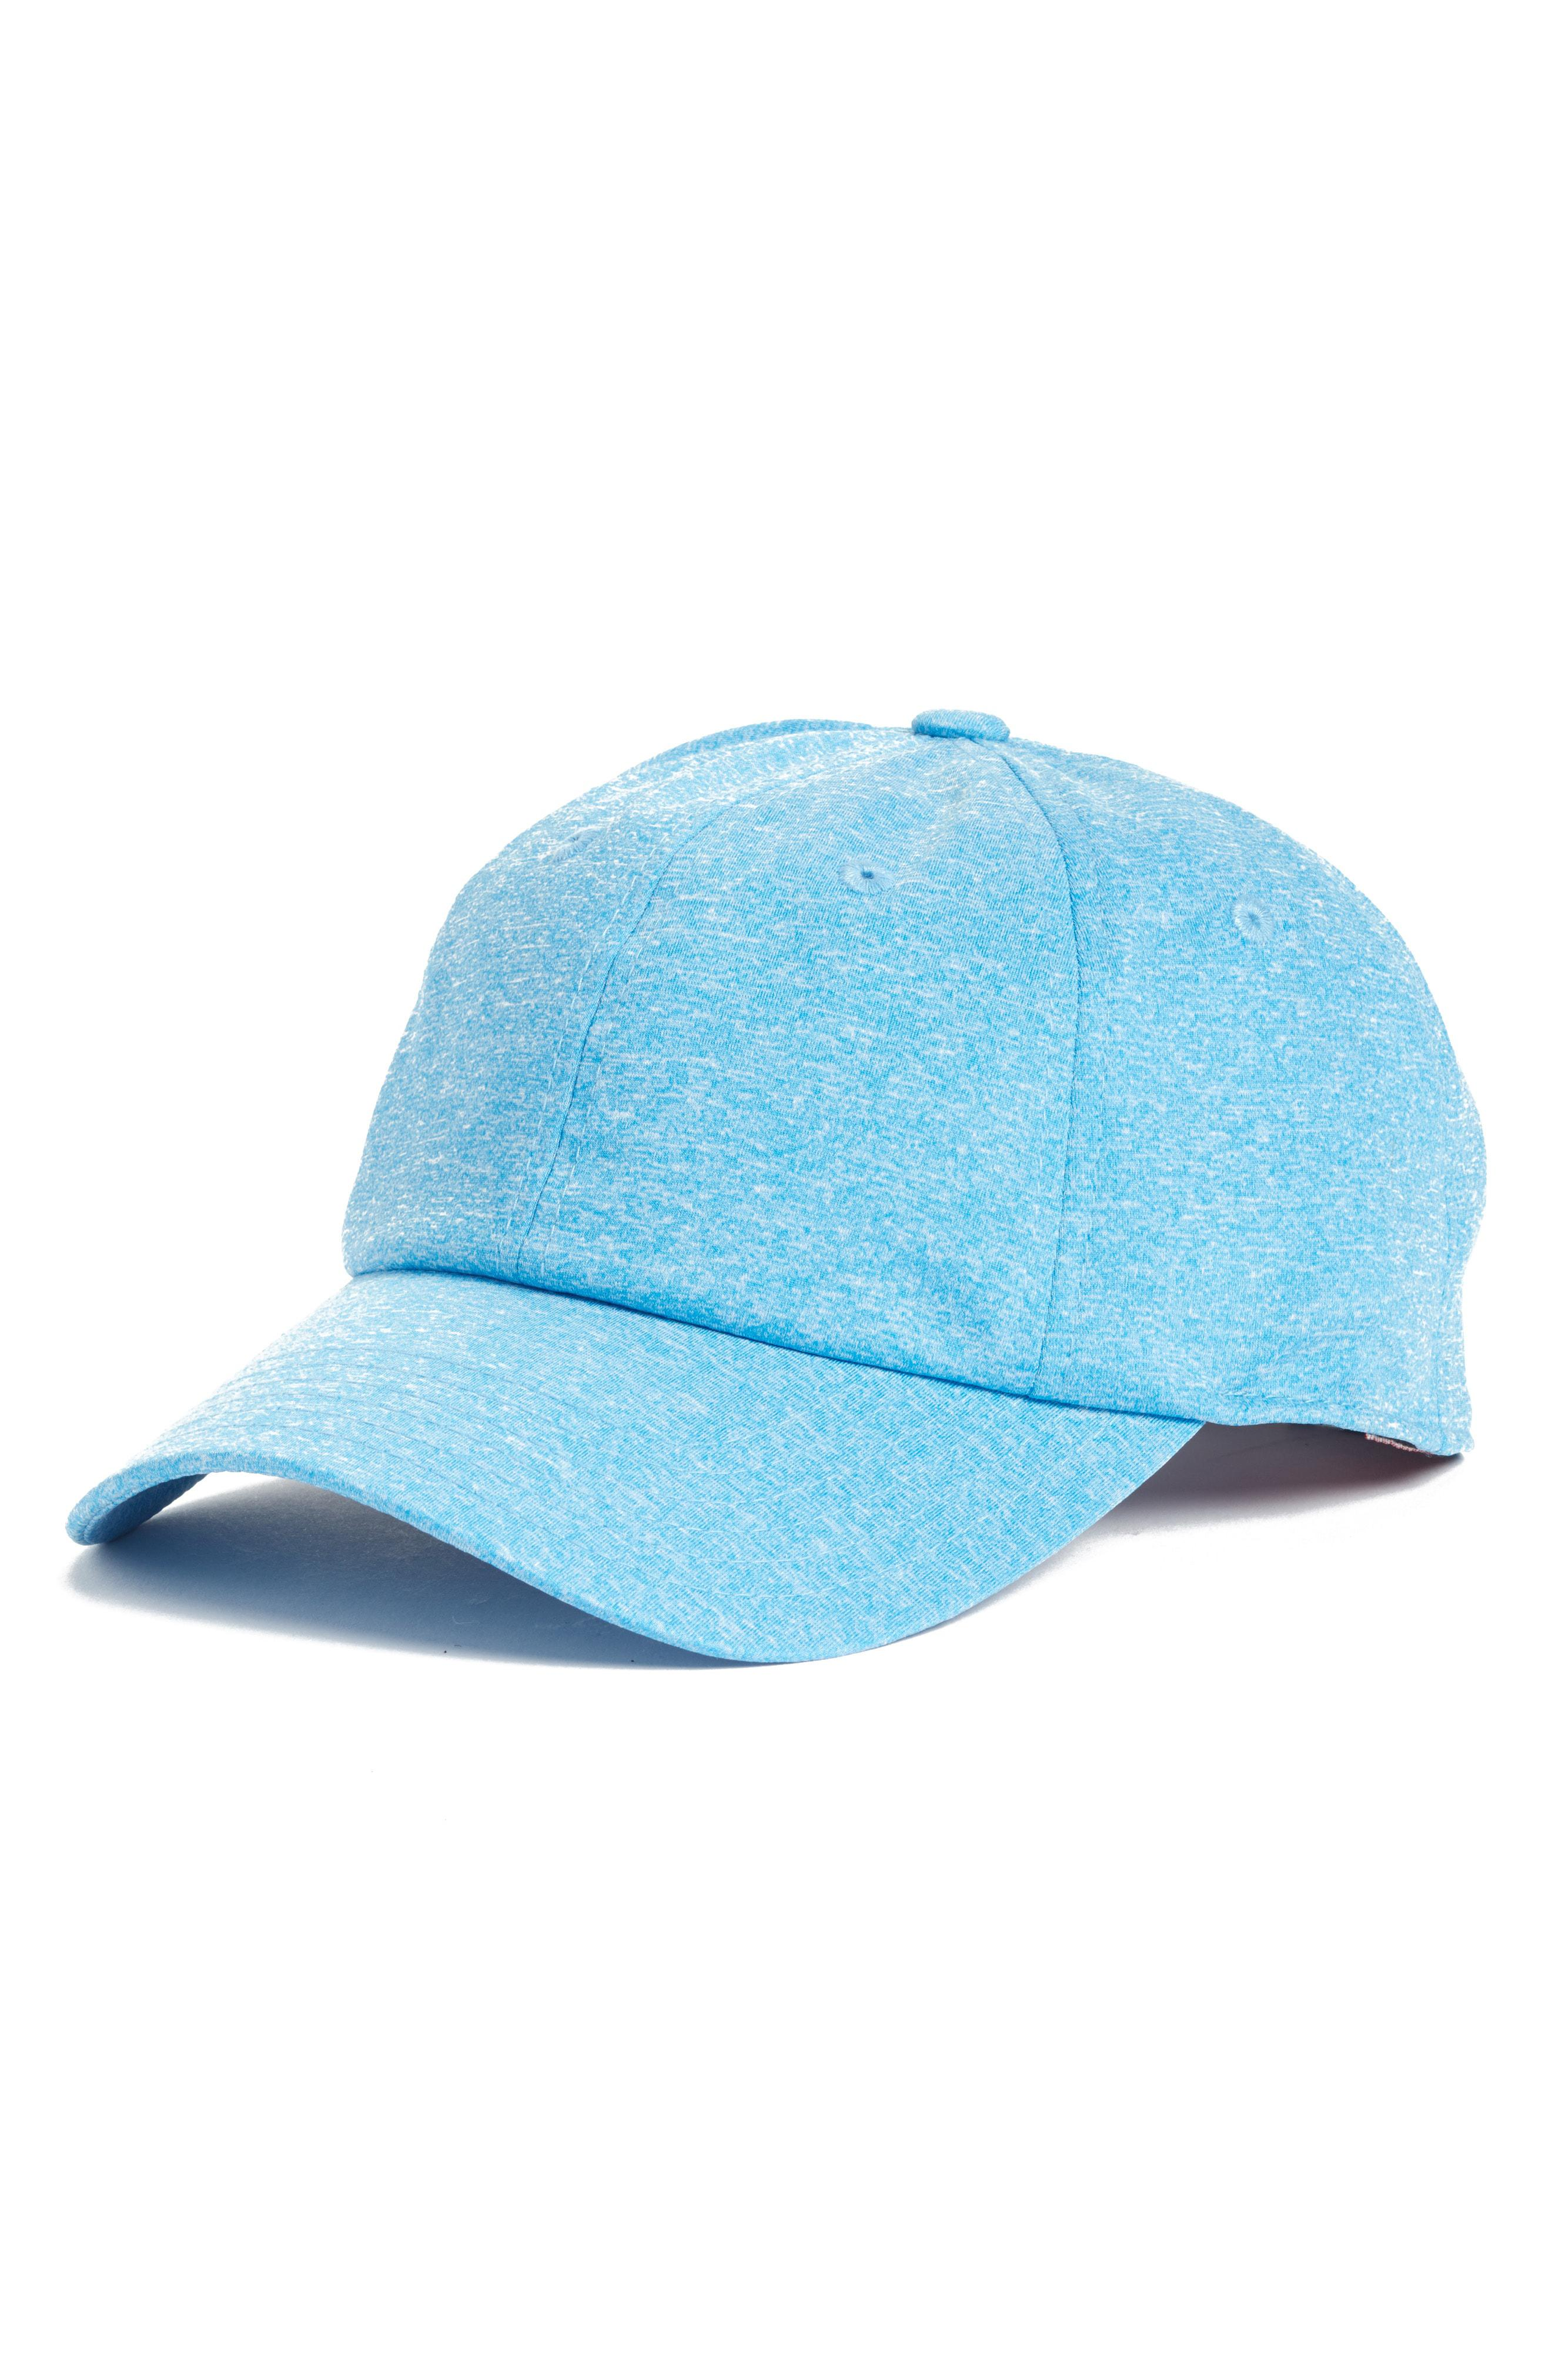 f9bbc6ce7cb20 Lyst - American Needle Heathered Tech Hat - in Blue